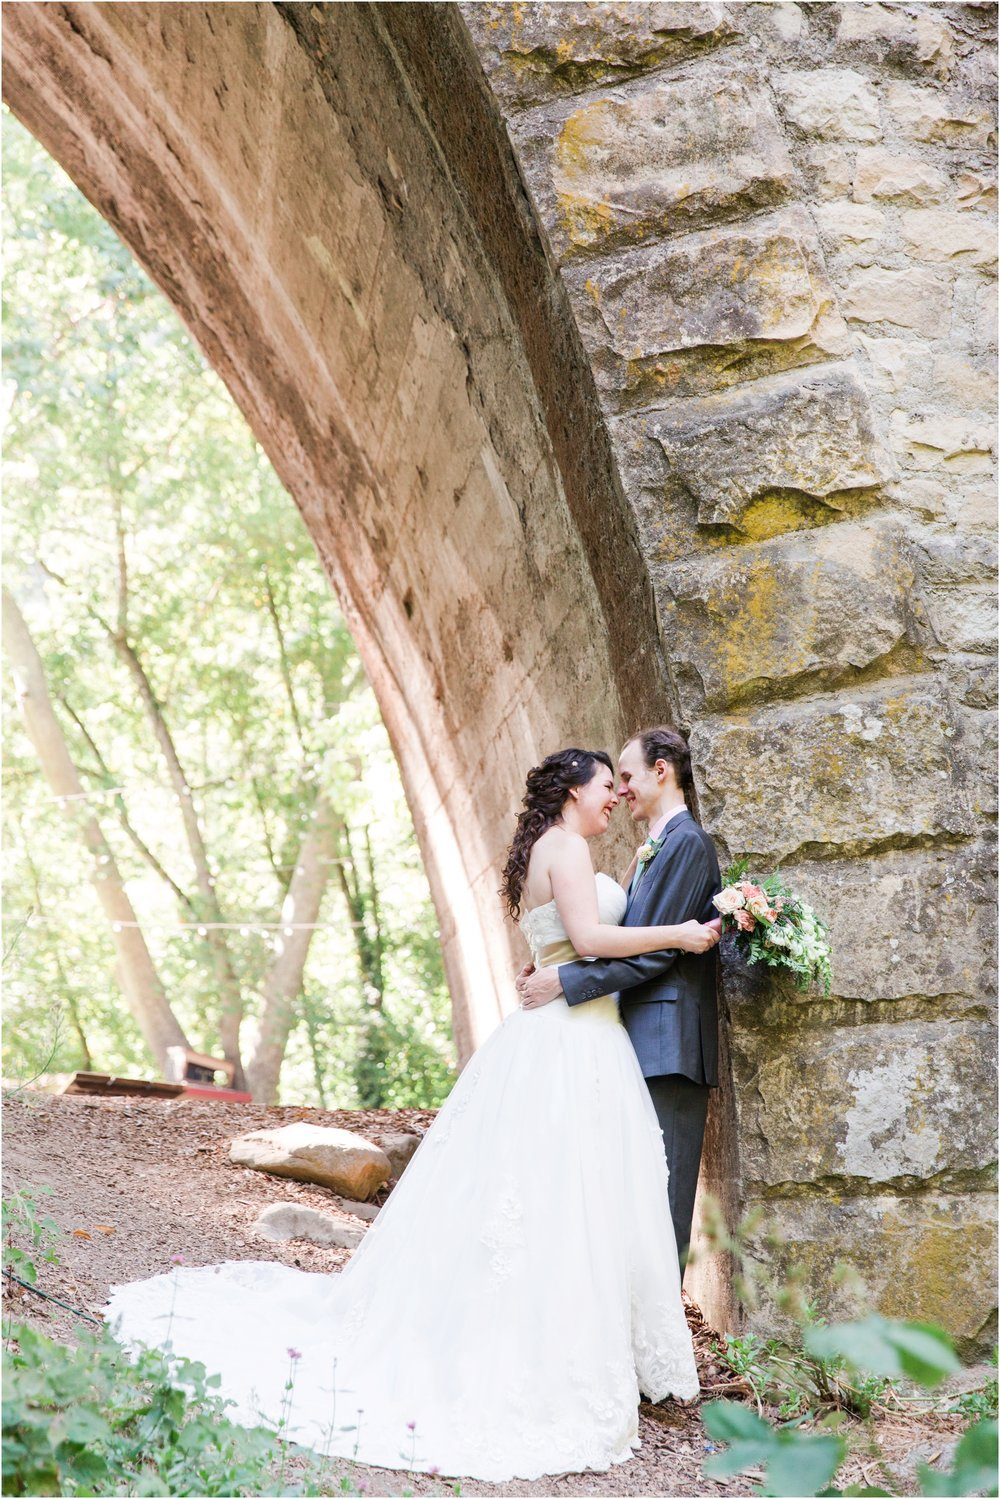 Saratoga Springs wedding pictures by Briana Calderon Photography_1832.jpg